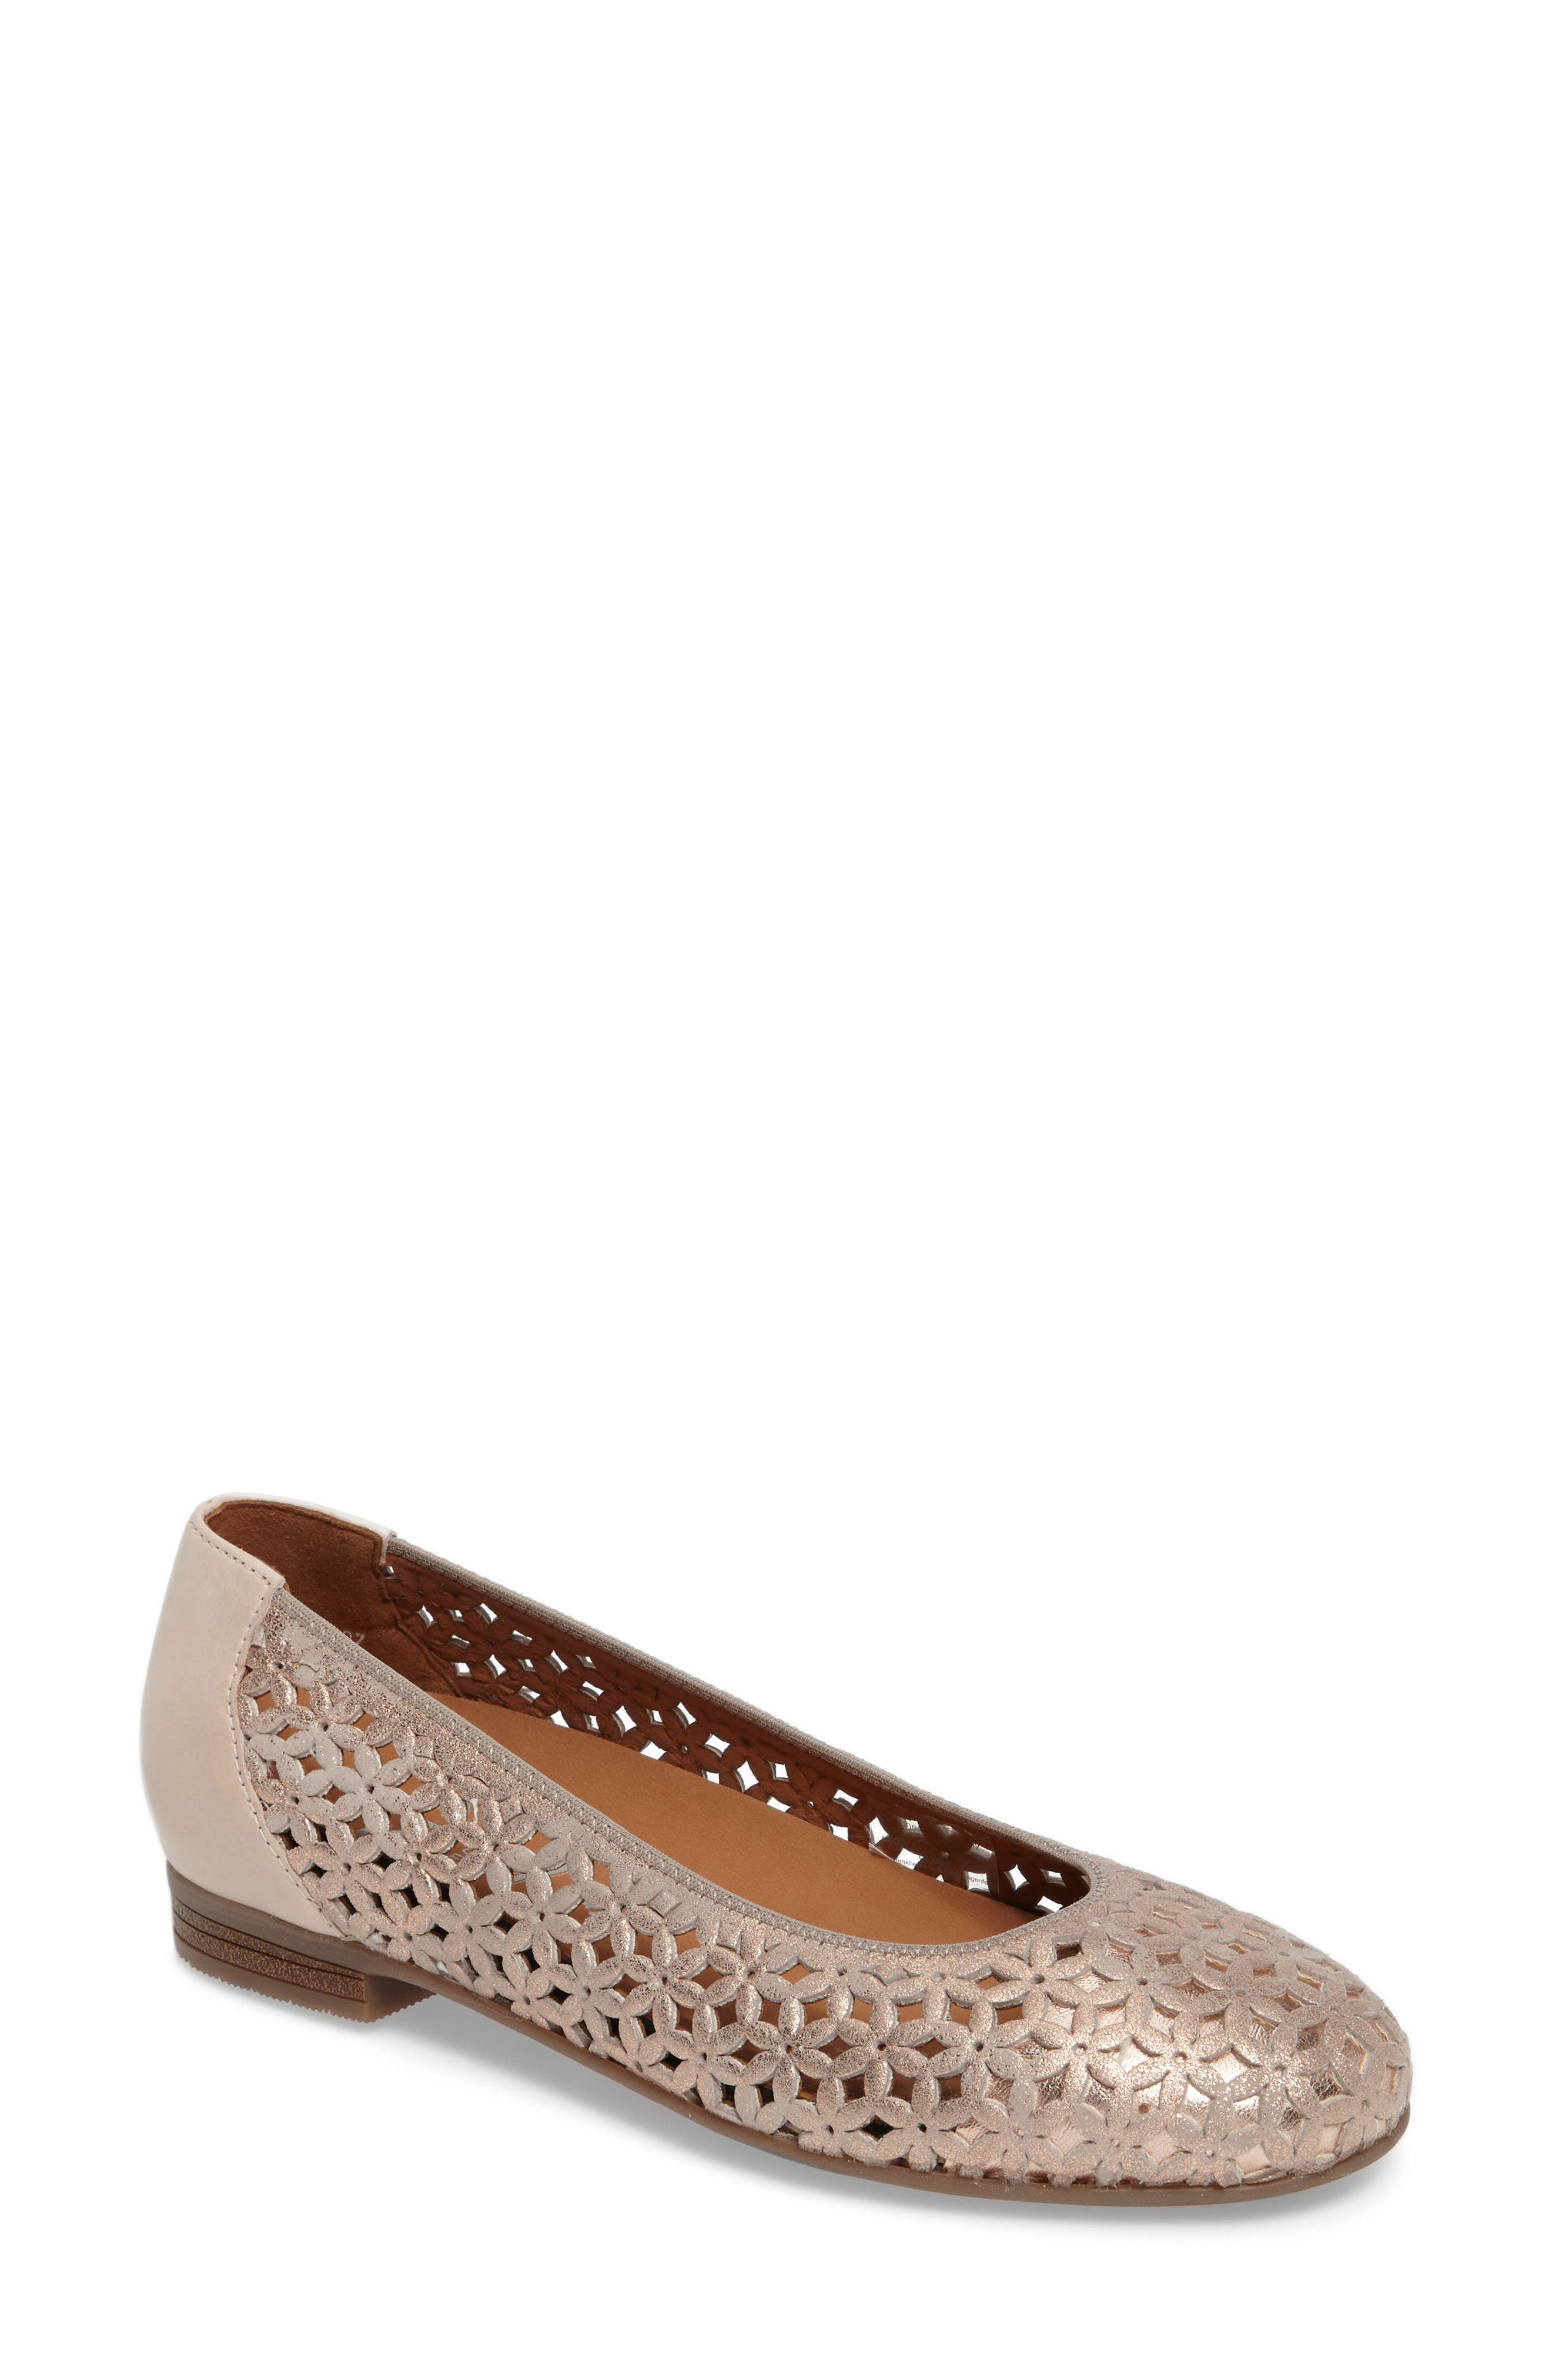 Stephanie Perforated Ballet Flat,                             Main thumbnail 2, color,